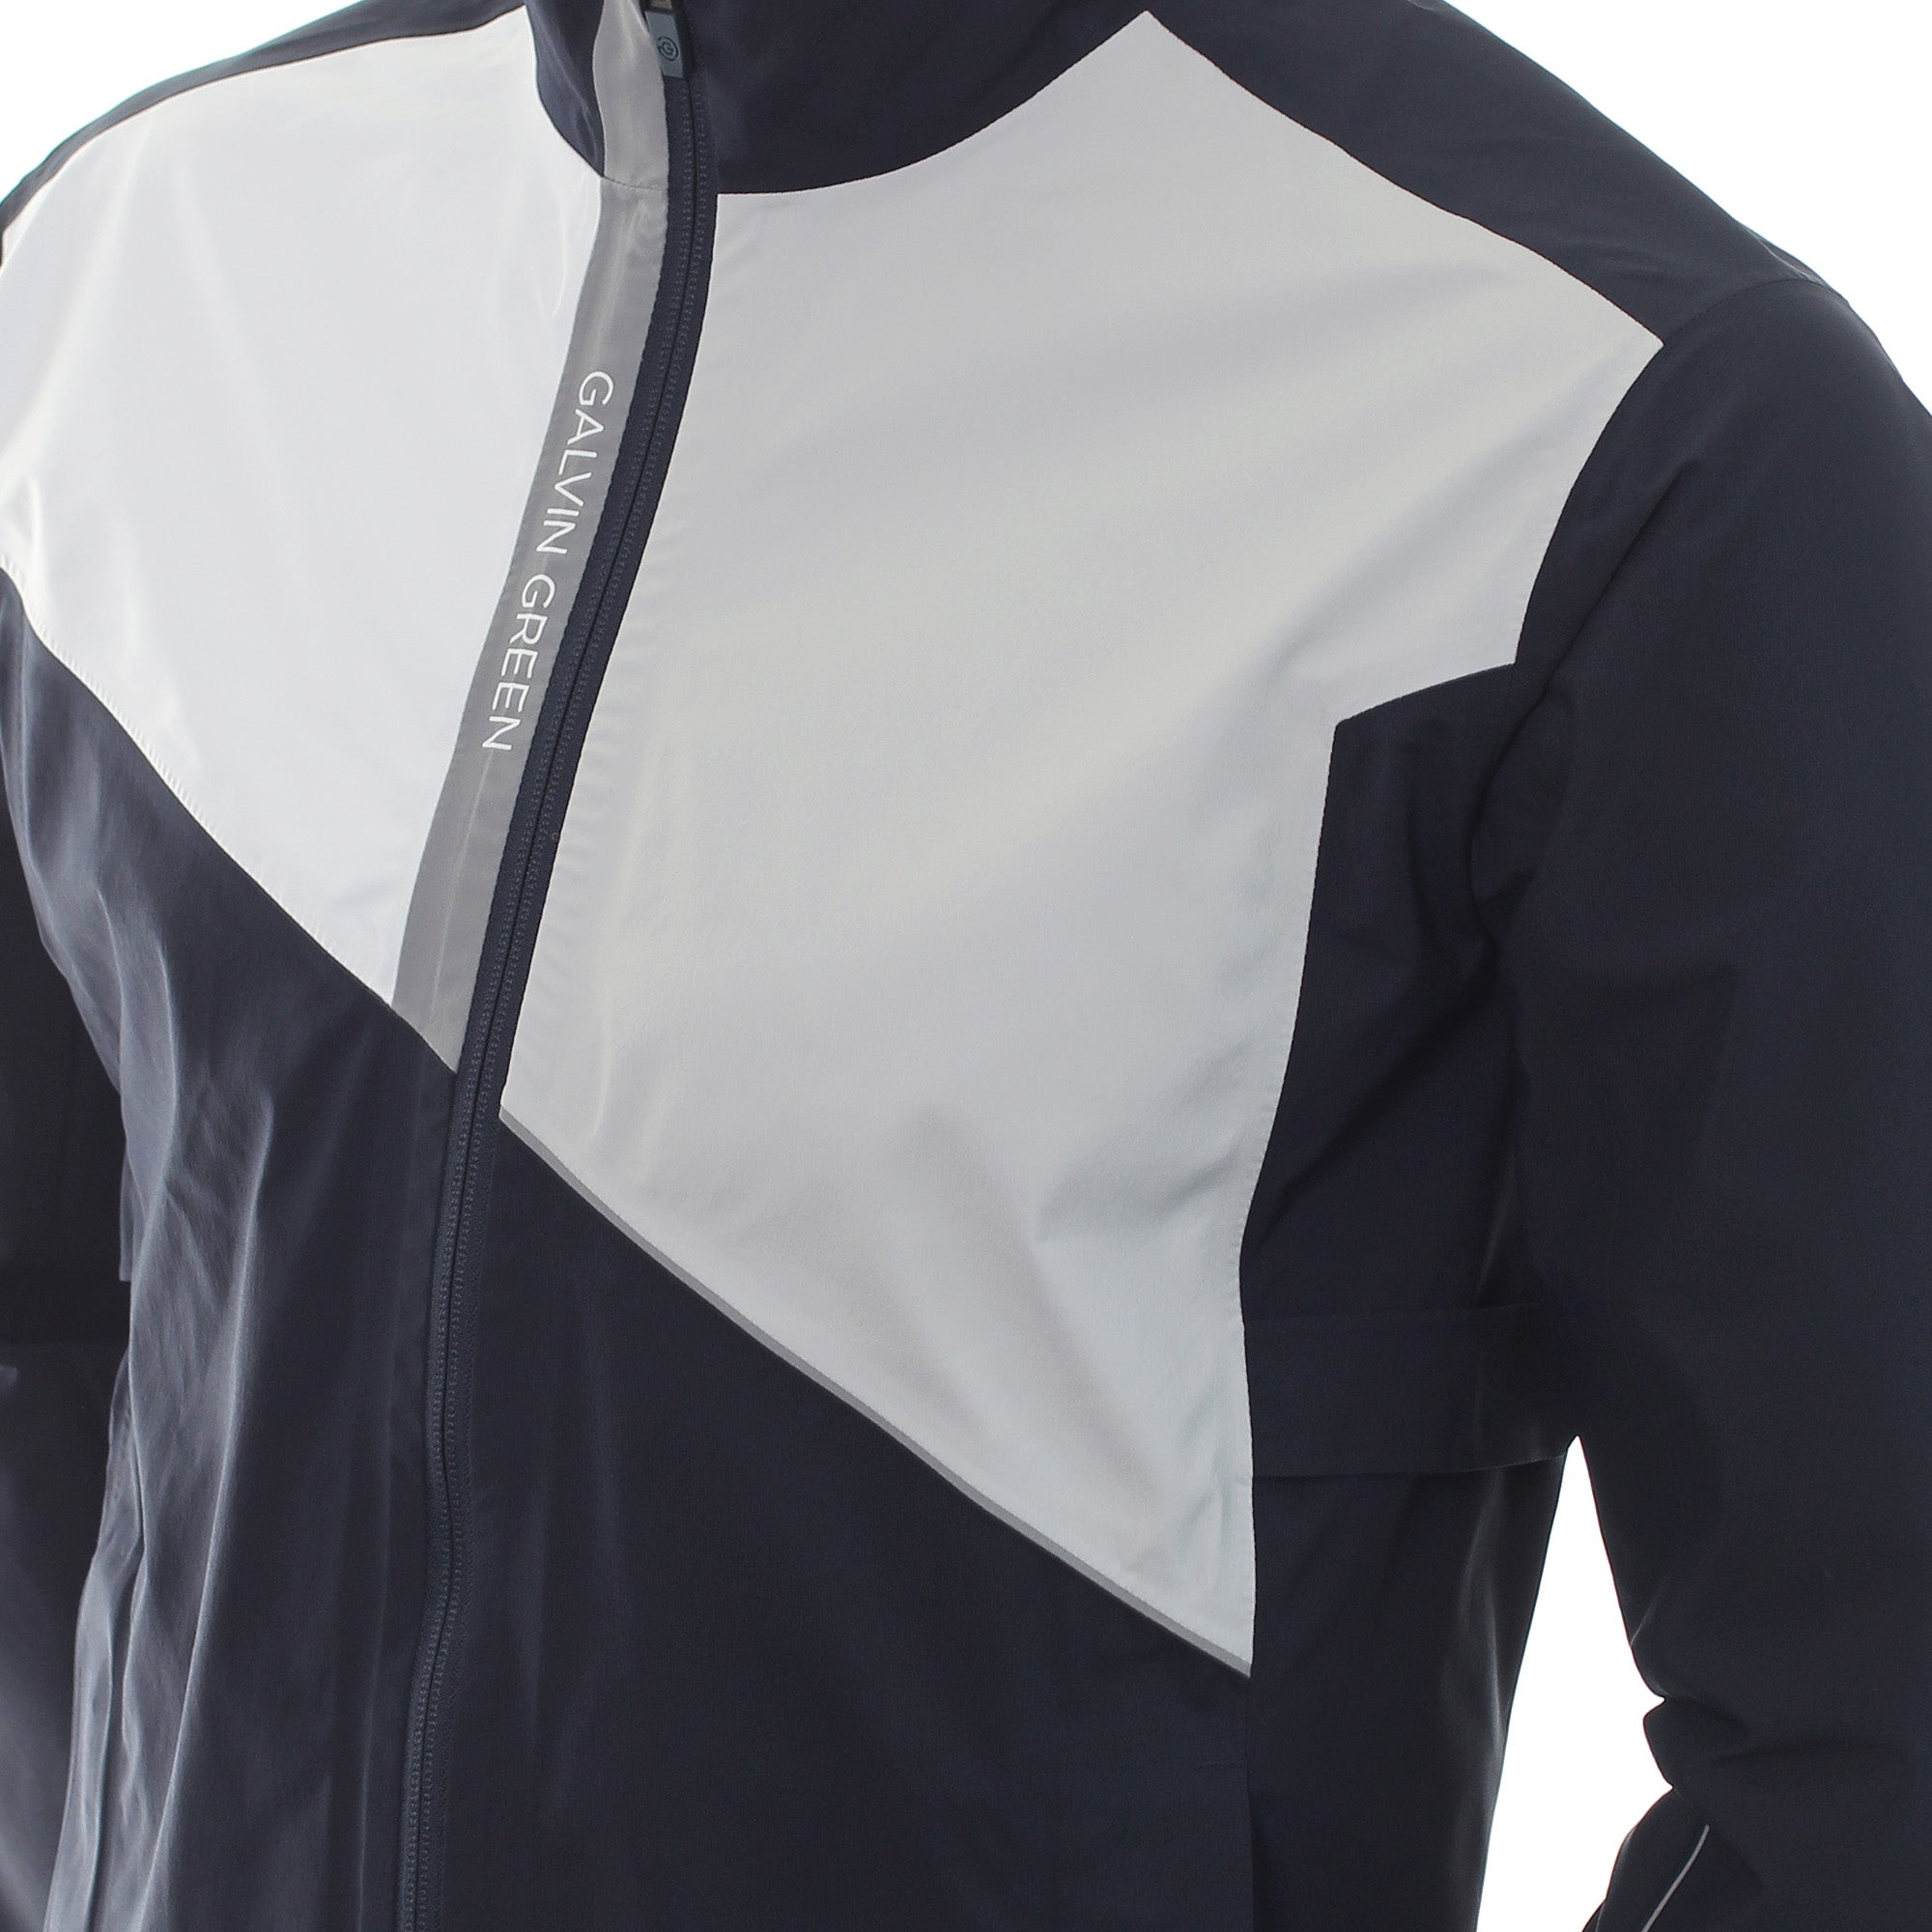 Galvin Green Apollo Paclite Gore-Tex Waterproof Jacket